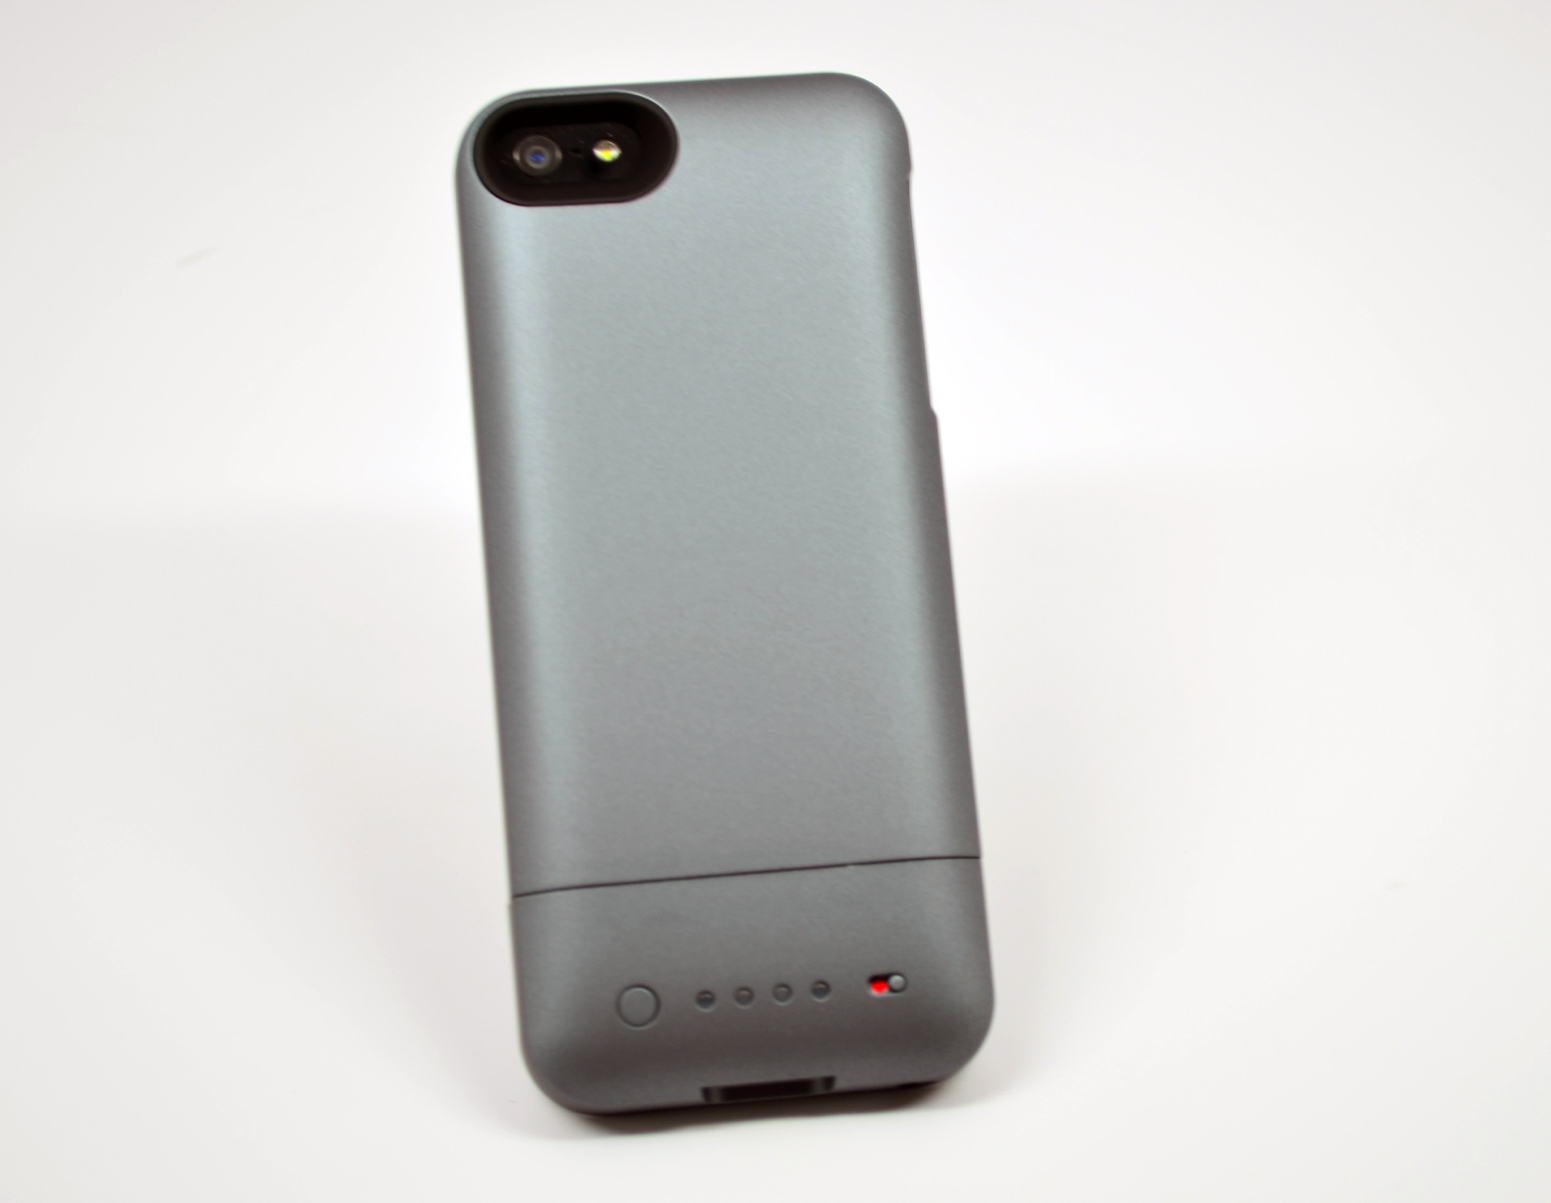 info for d7869 ffb21 Mophie Juice Pack Helium Review: iPhone 5 Battery Case